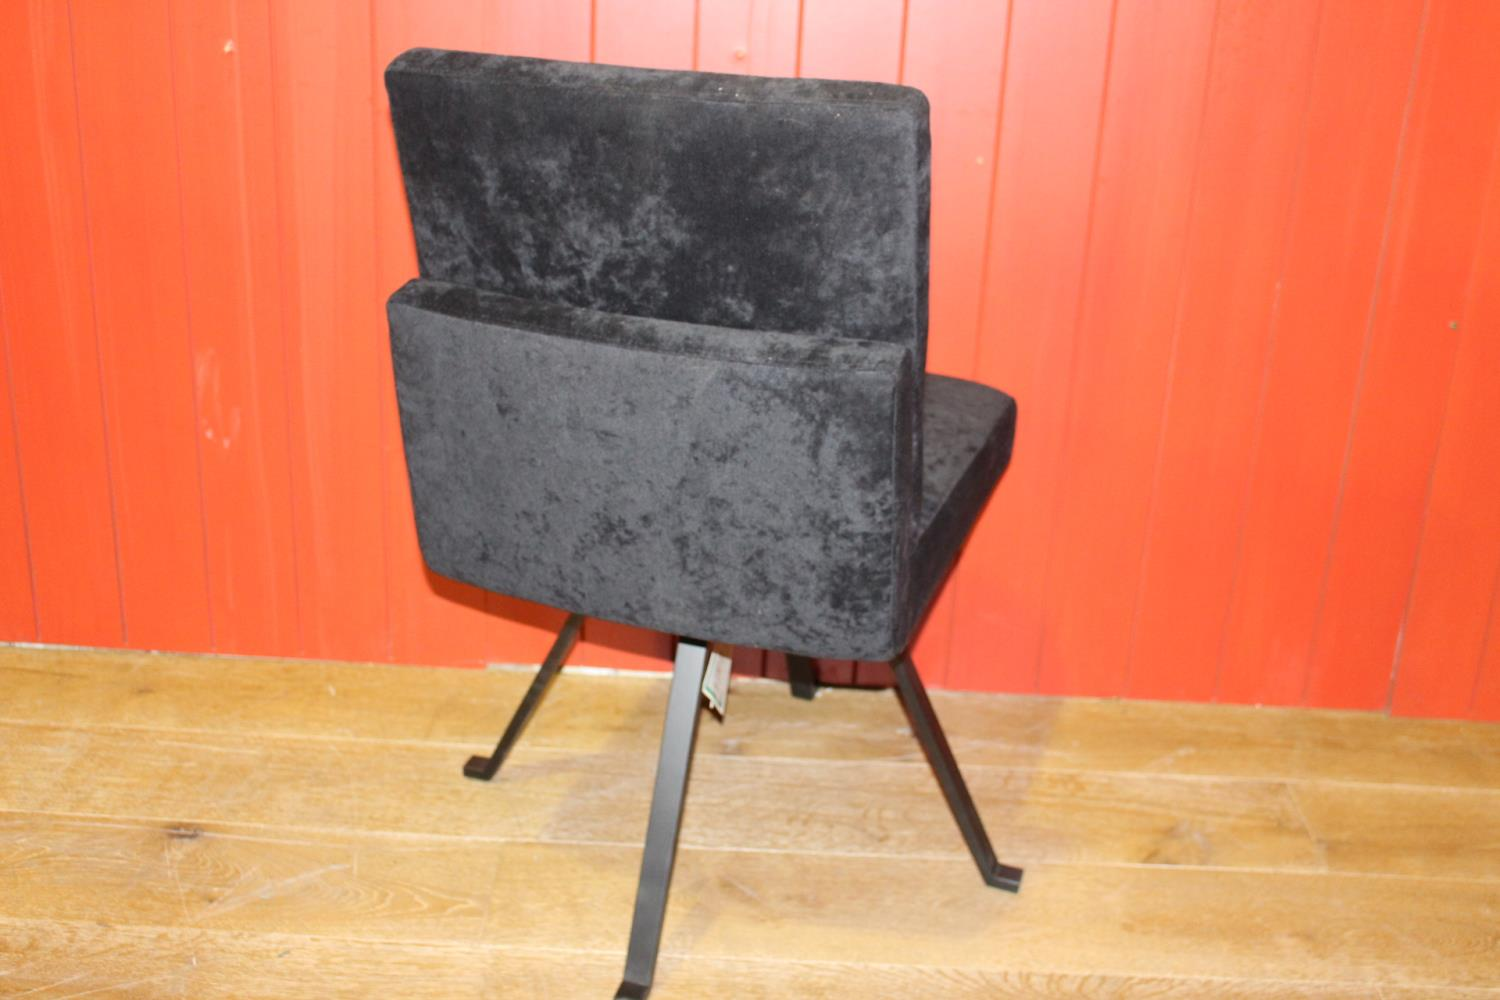 Black velvet upholstered swivel chair - Image 2 of 2